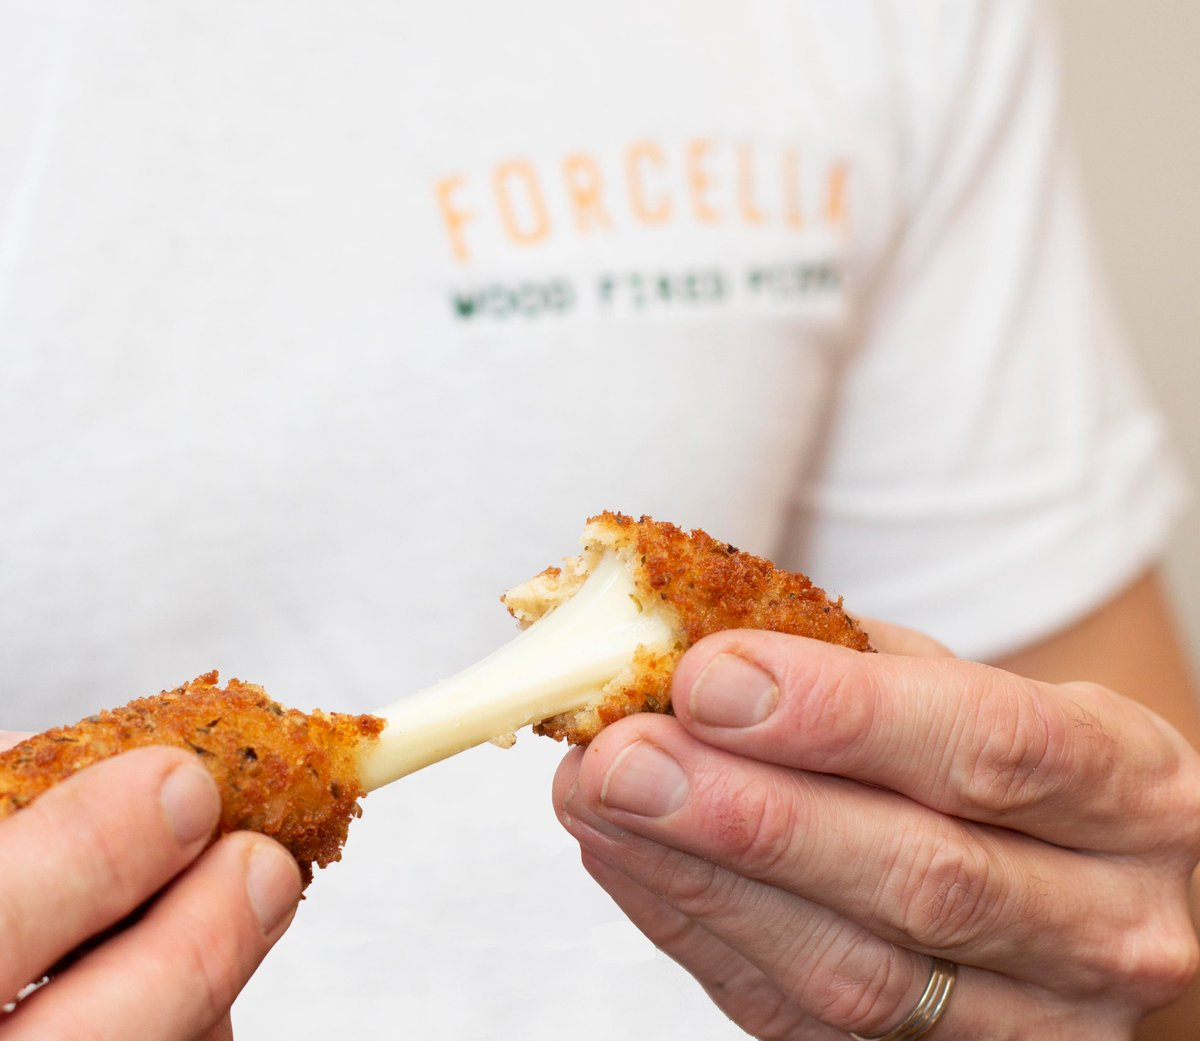 Mozzarella fingers with tomato and smoked chilli 🌶…a very popular add on for private events. 🔥🍕 . . . #pizza #pizzalondon #bromley#mobilepizza #pizzaparty #foodimages  #nopizzanoparty #weddingcatering #eventcatering  #kentwedding #sussexwedding #mozzarellafingers #partyfood